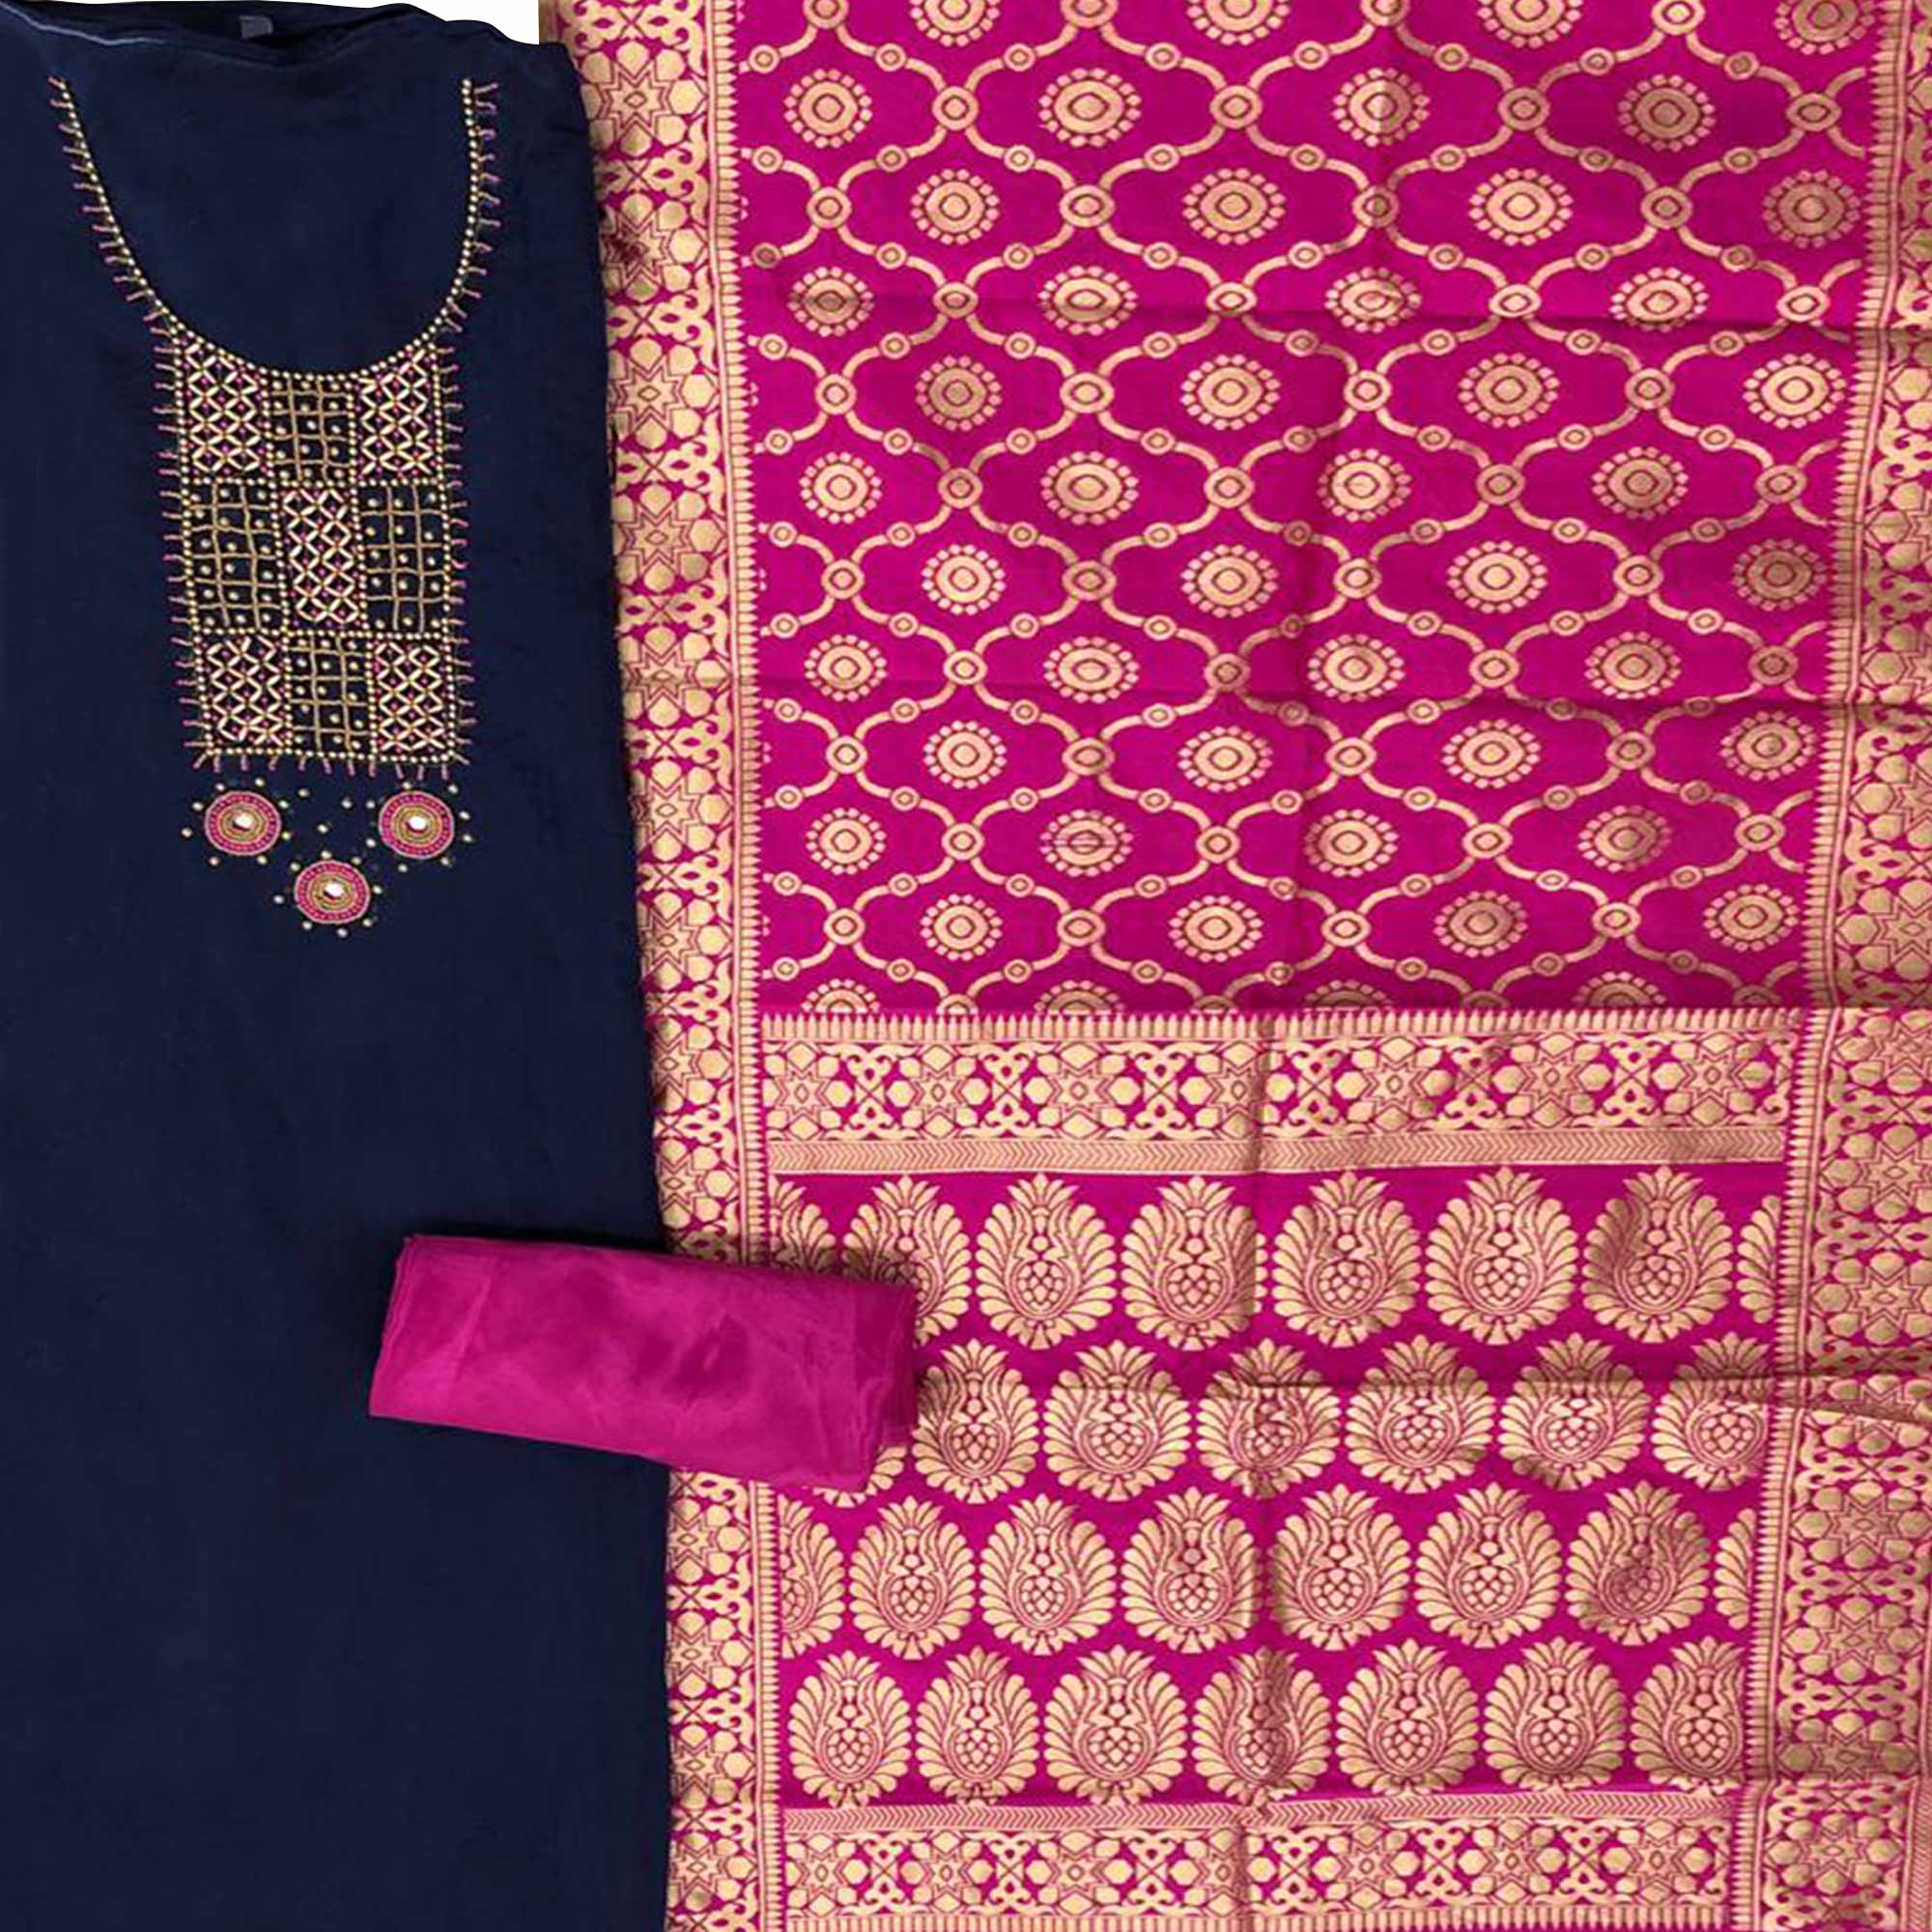 Elegant Navy Blue Colored Partywear Embroidered Chanderi Silk Dress Material